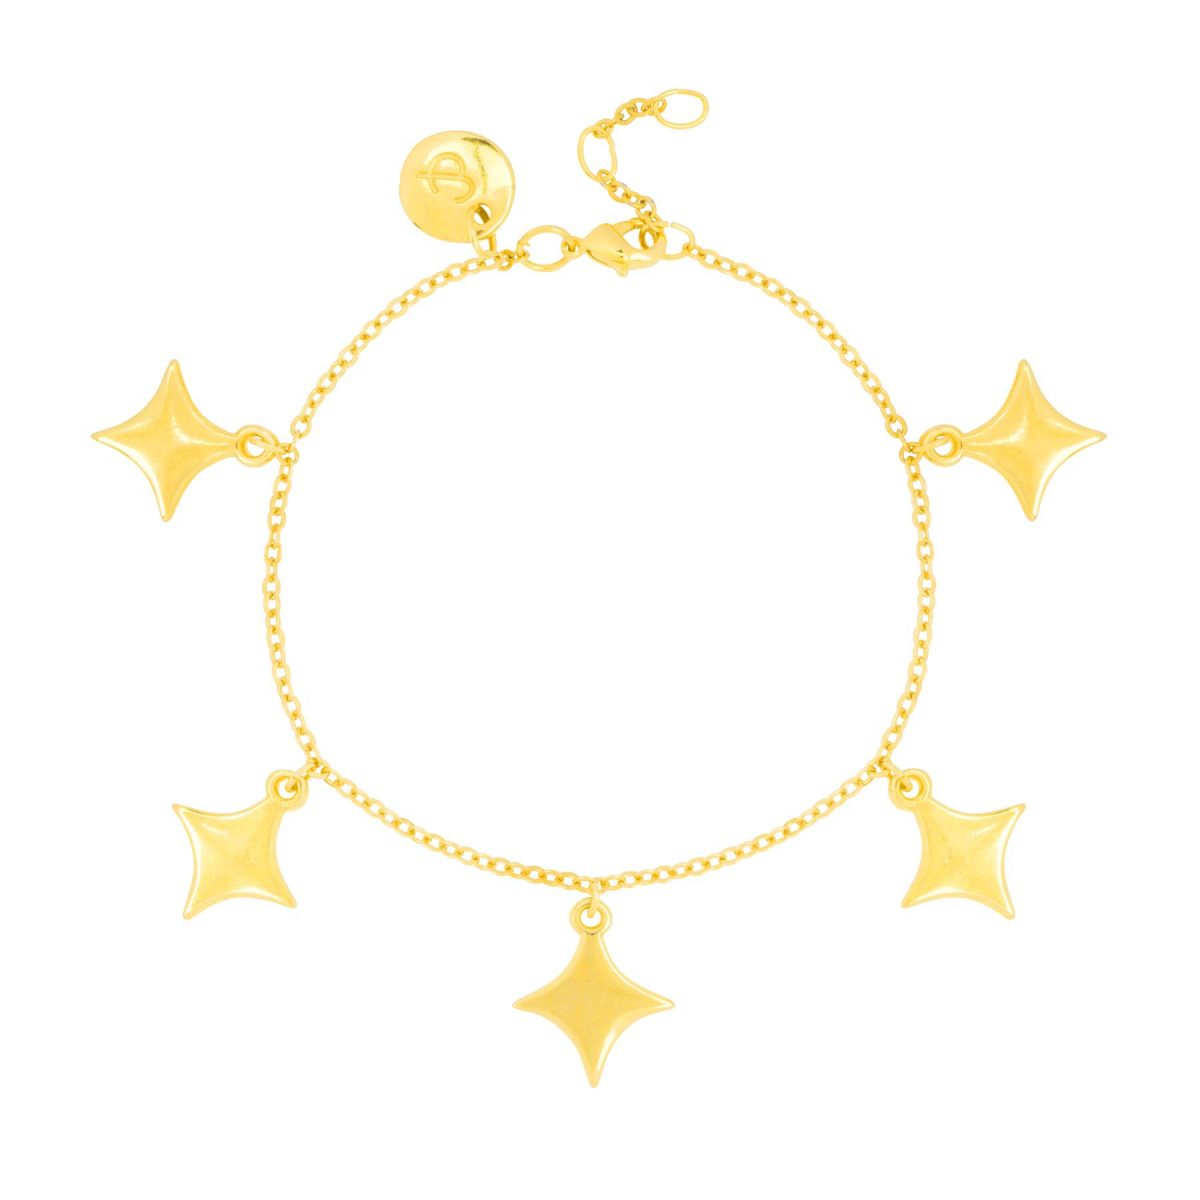 Trendy 24k gold plated bracelet with sparkle design from the &anne collection